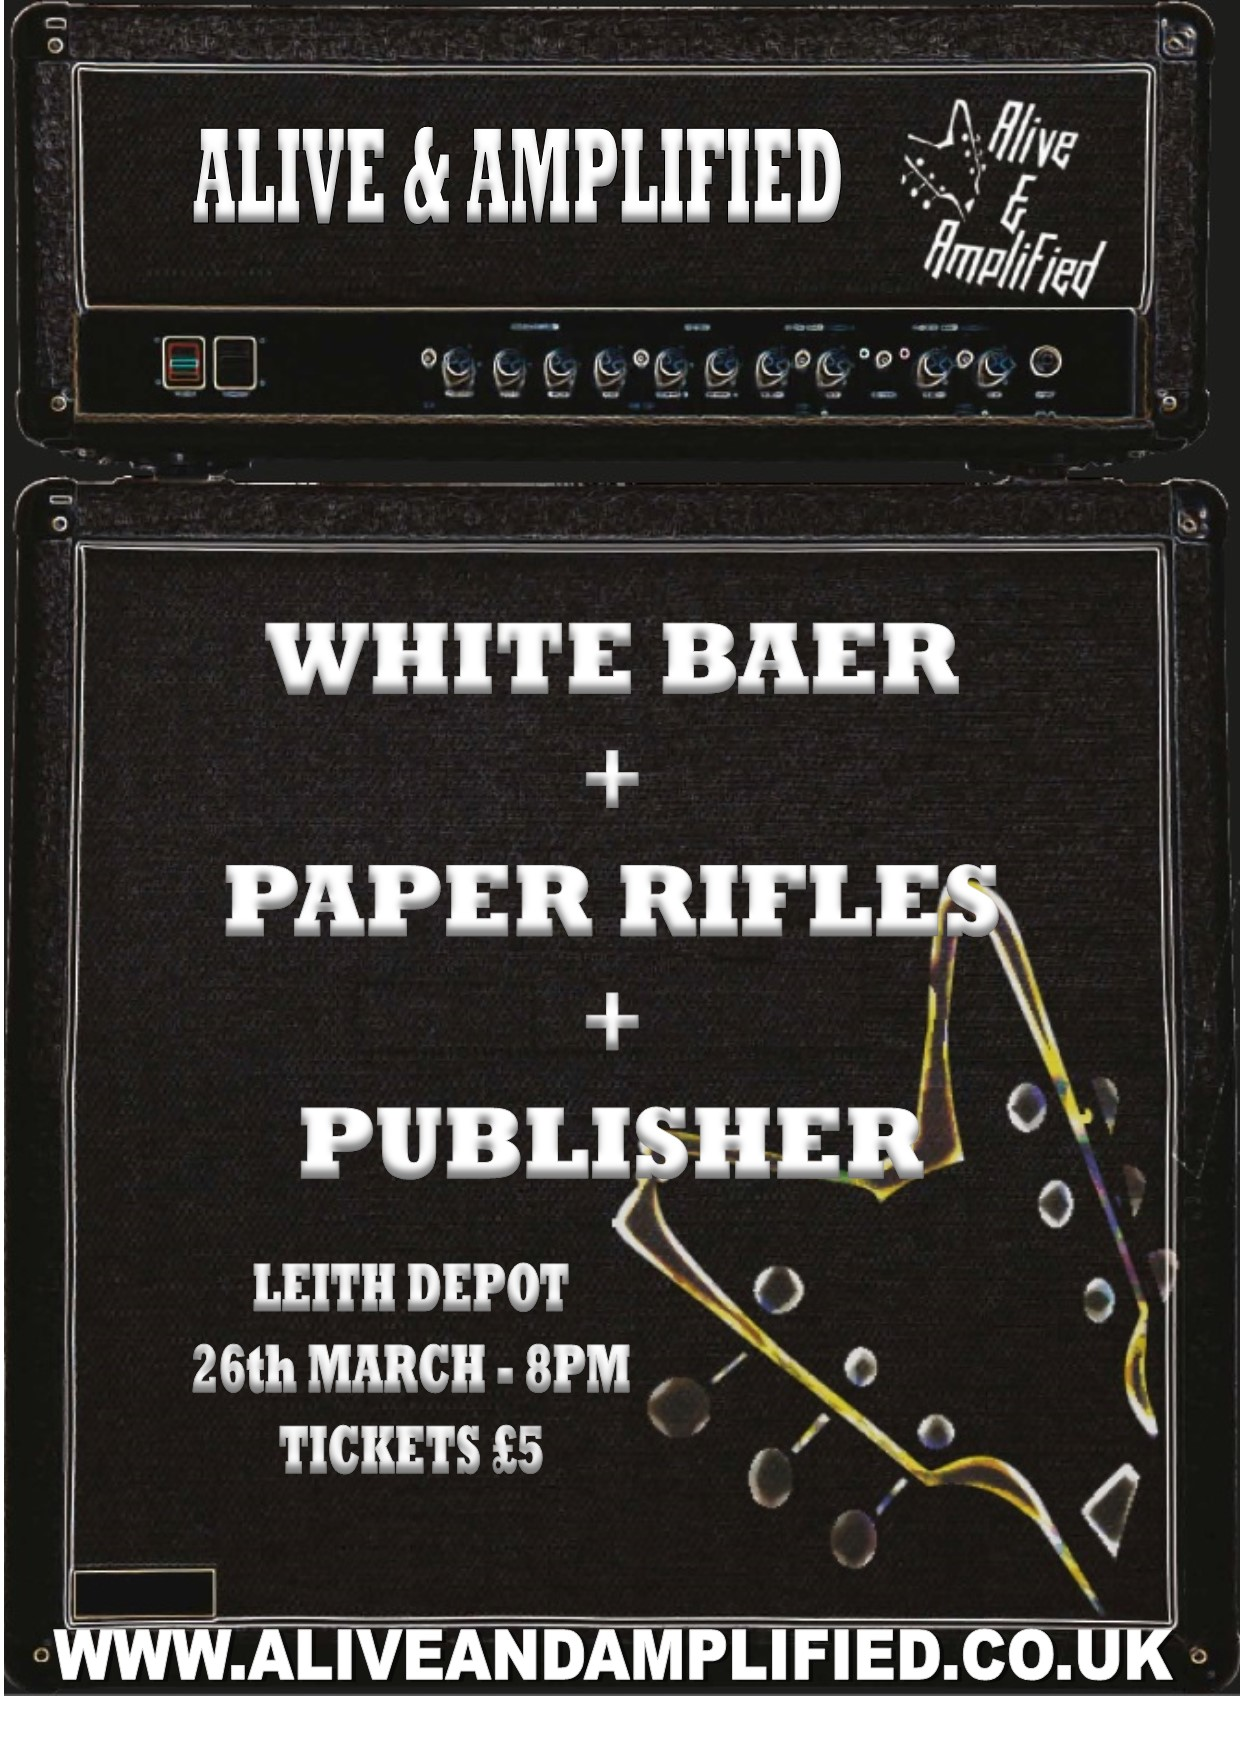 Alive & Amplified Showcase 2 – White Baer + Paper Rifles + Publisher – 26th March